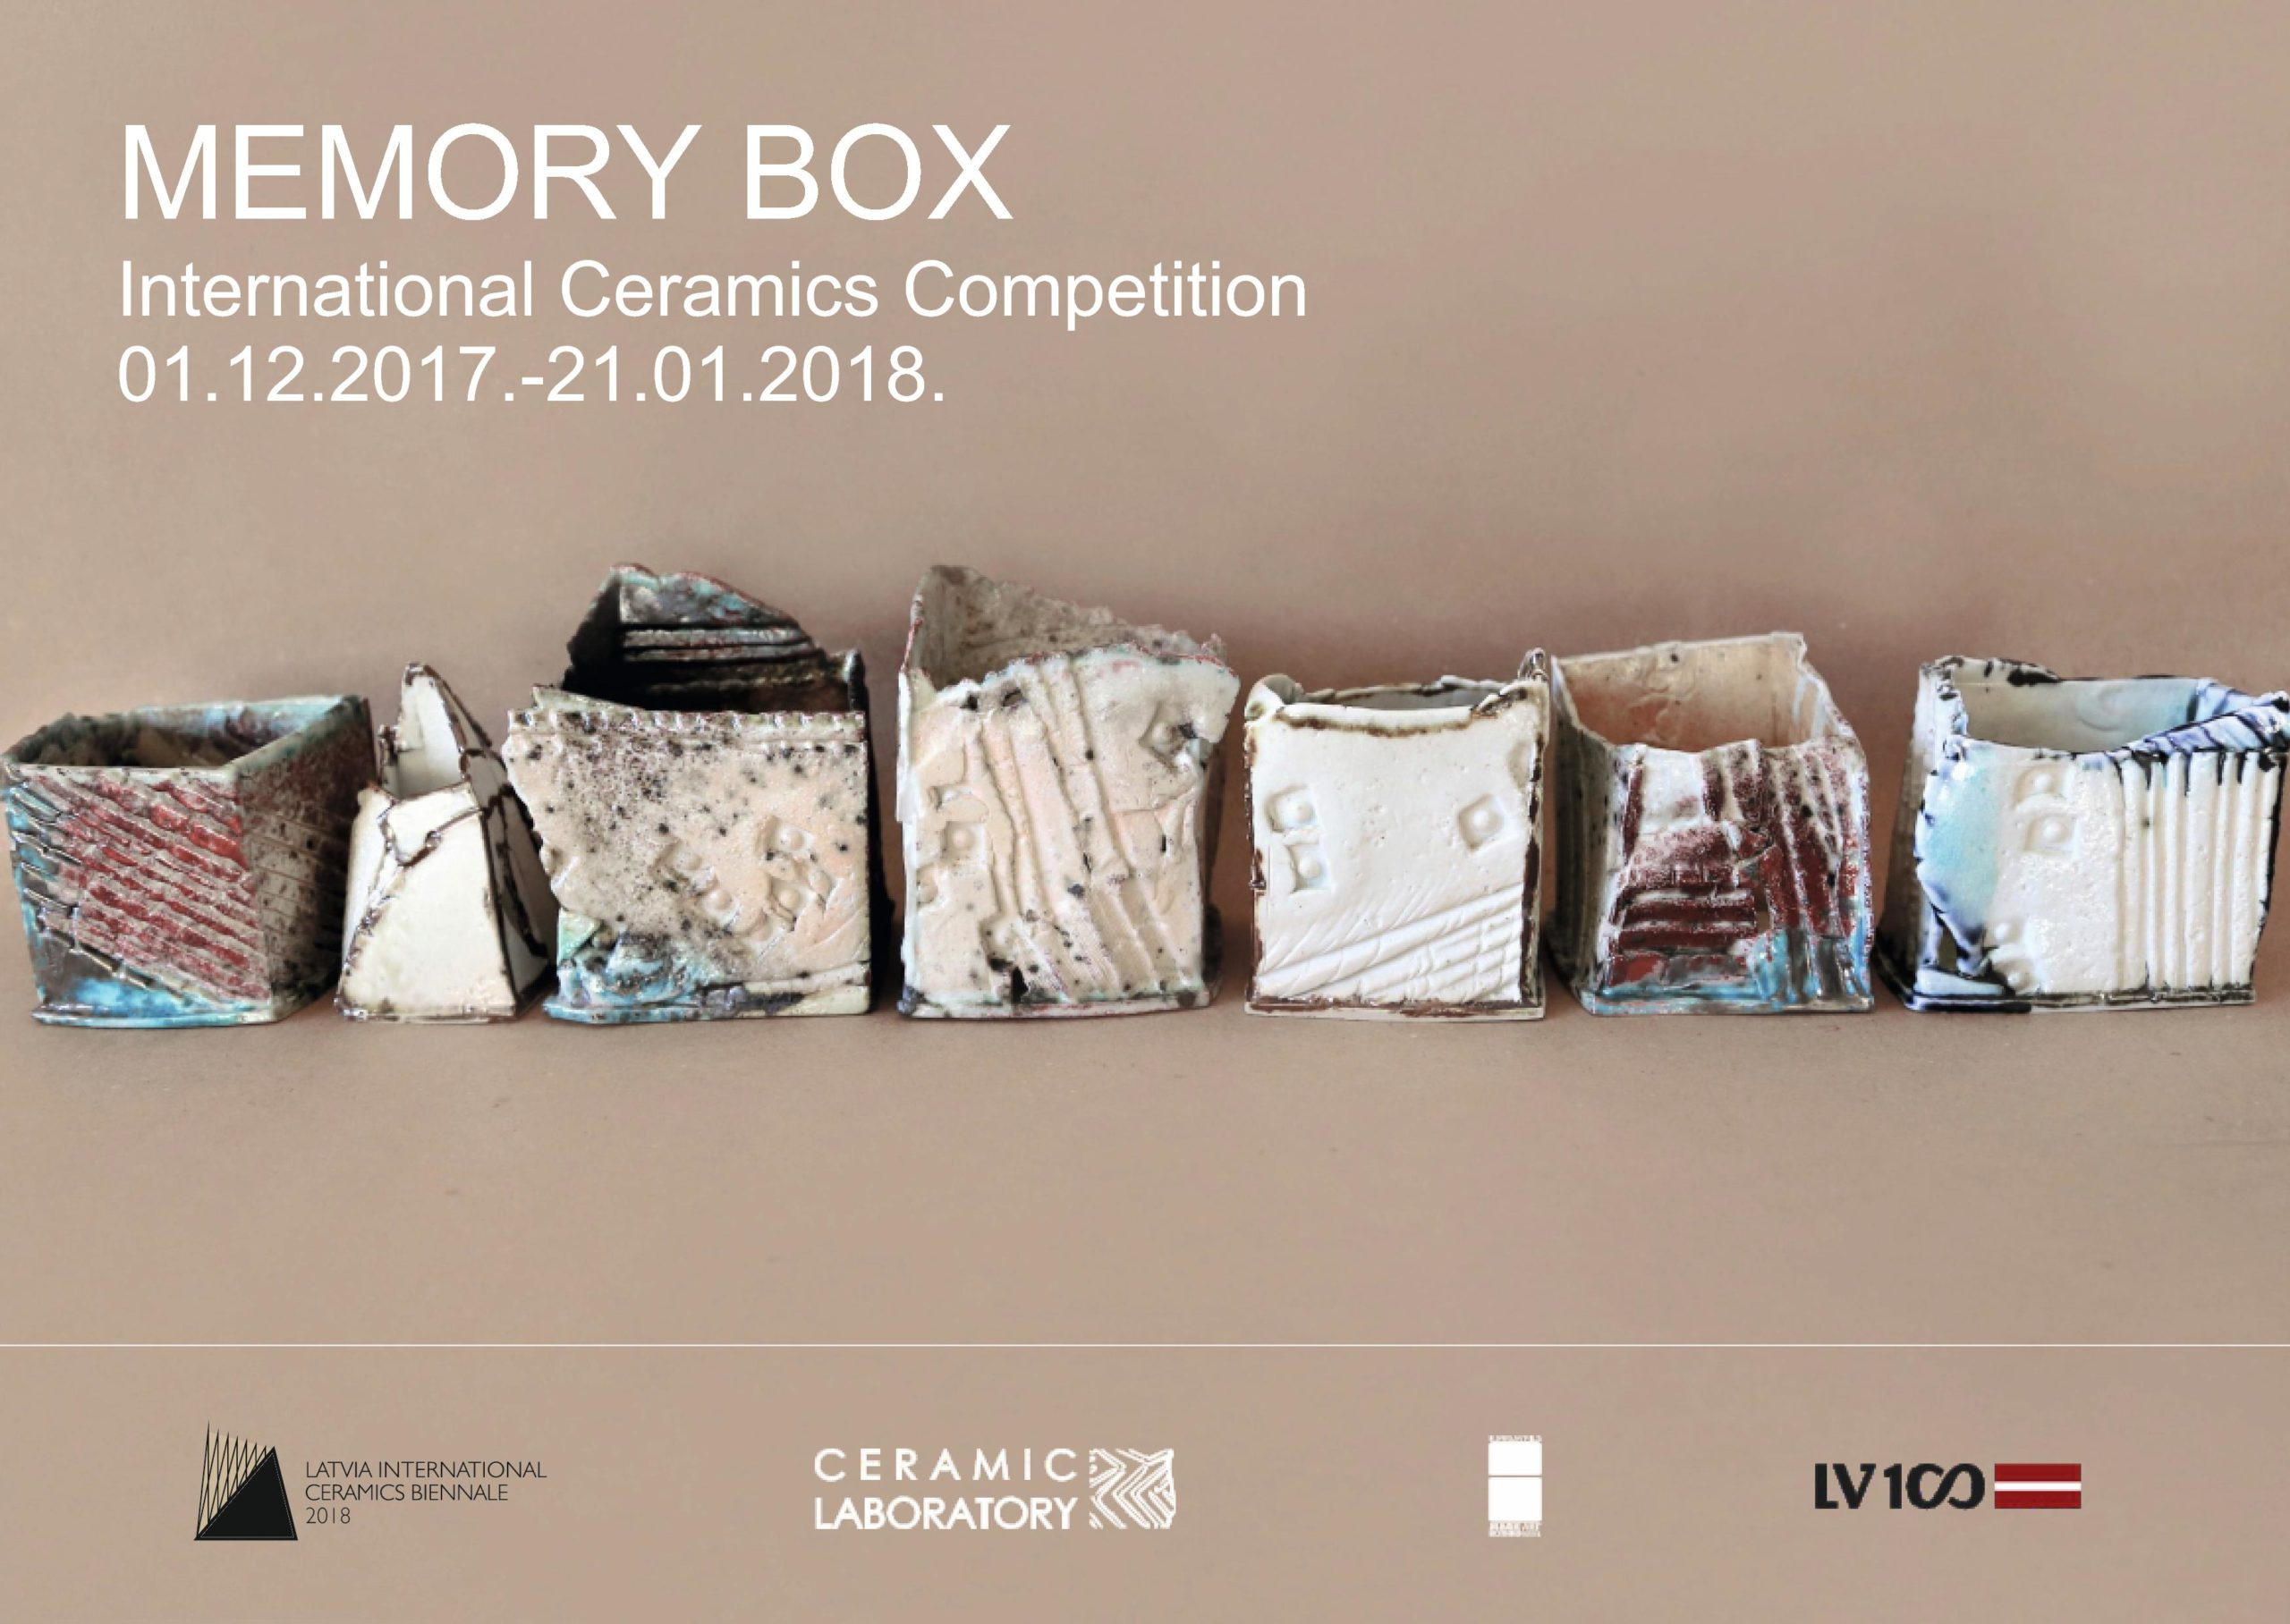 LATVIA INTERNATIONAL CERAMICS BIENNALE 2018